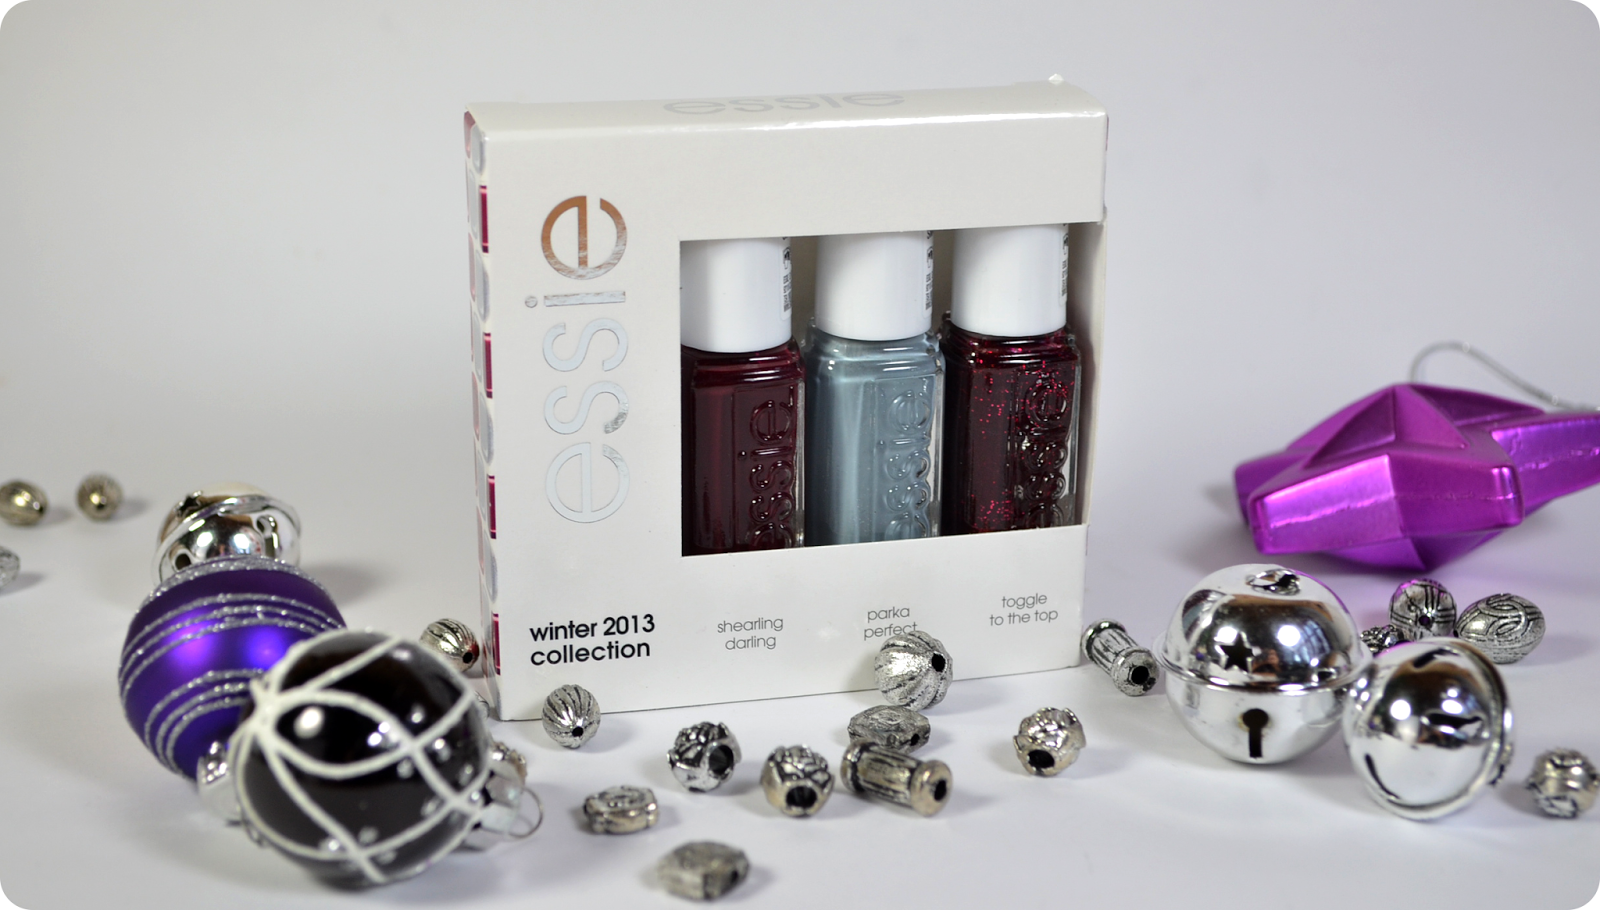 Review essie Winter Collection 2013 - Die Aufmachung